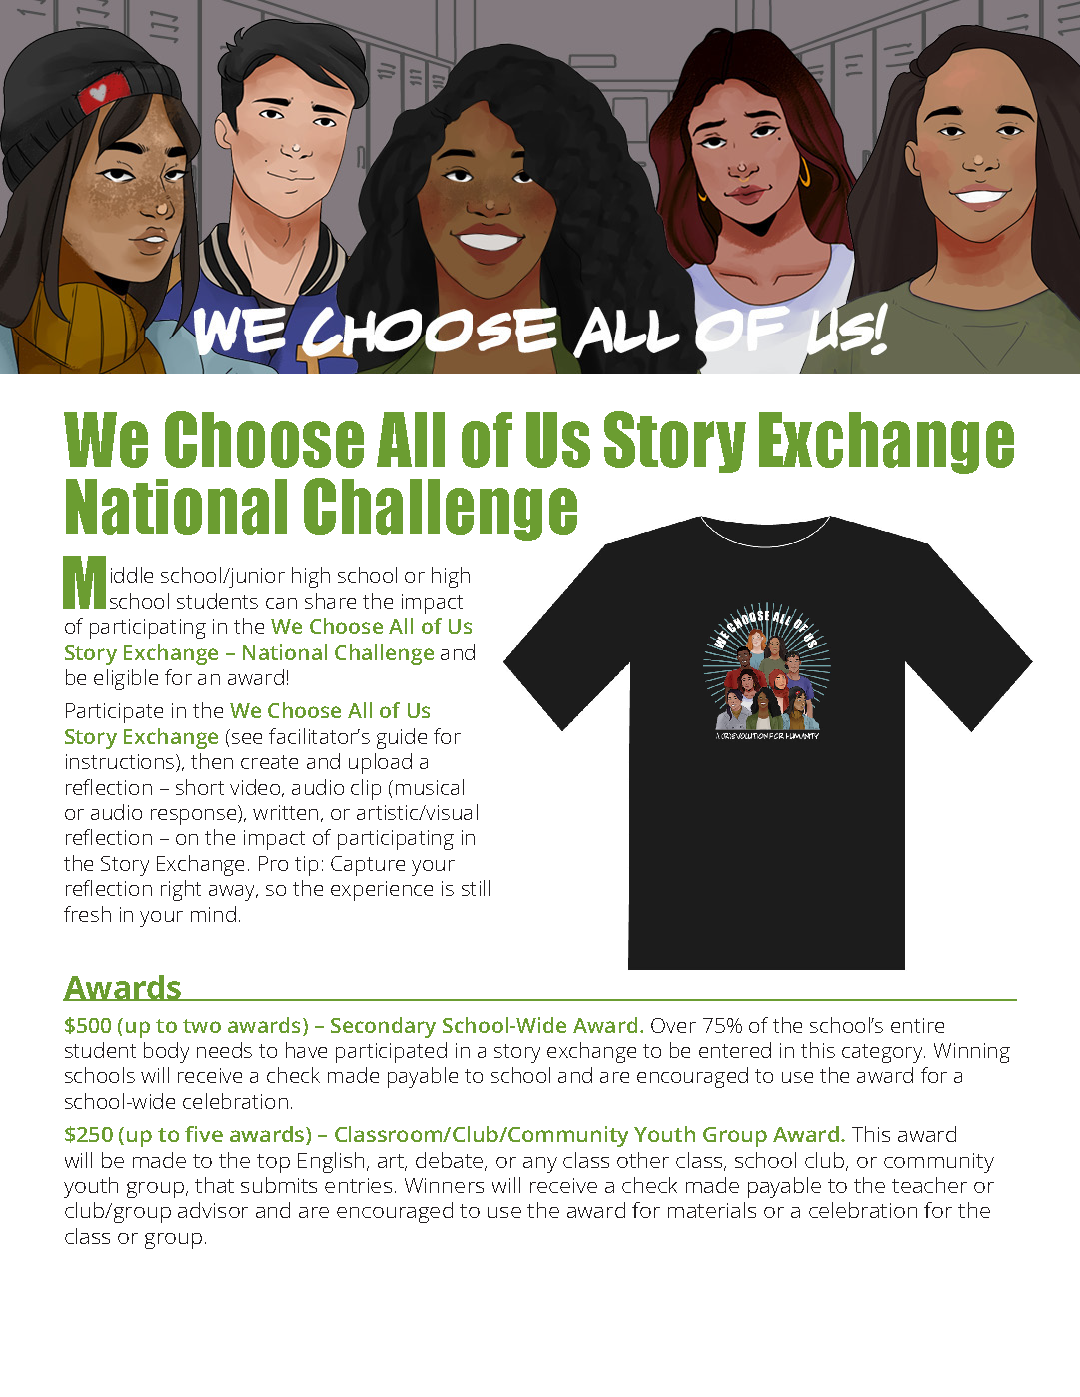 Story Exchange National Challenge Guidelines and Rules